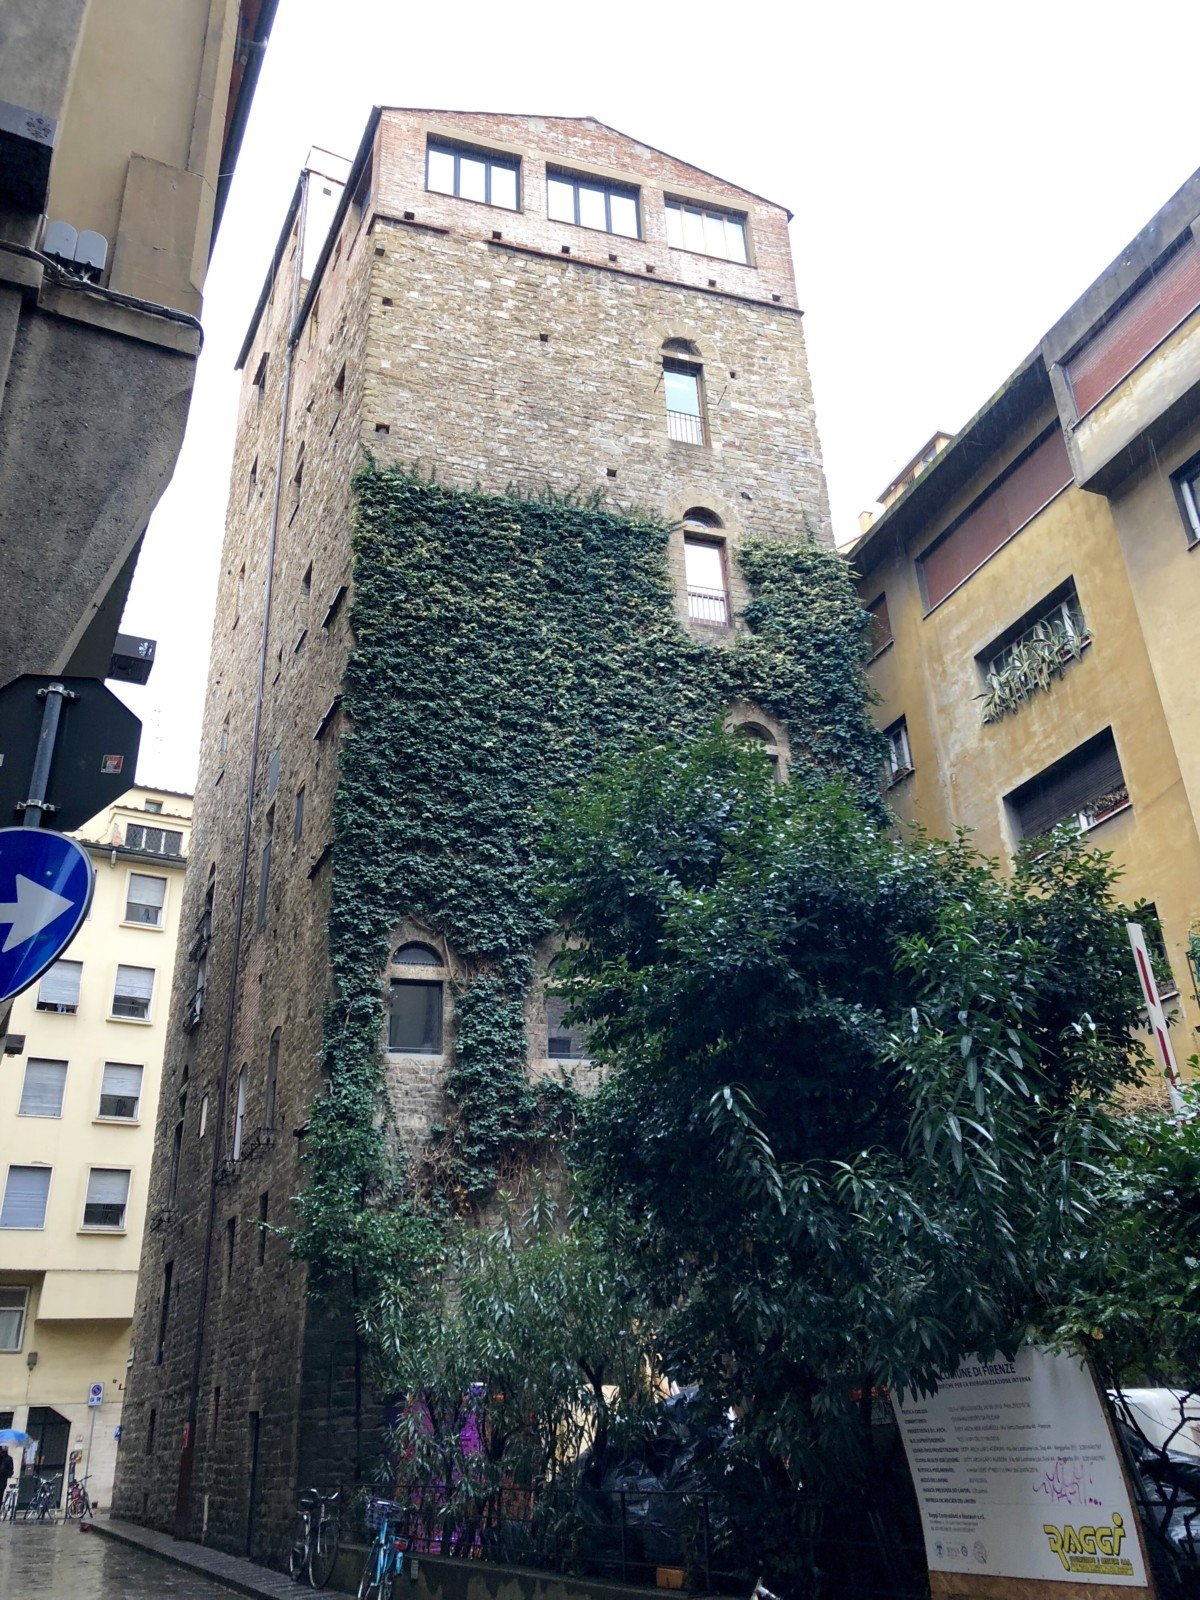 Belfredelli Tower Day trip Gelato making in florence with Livitaly